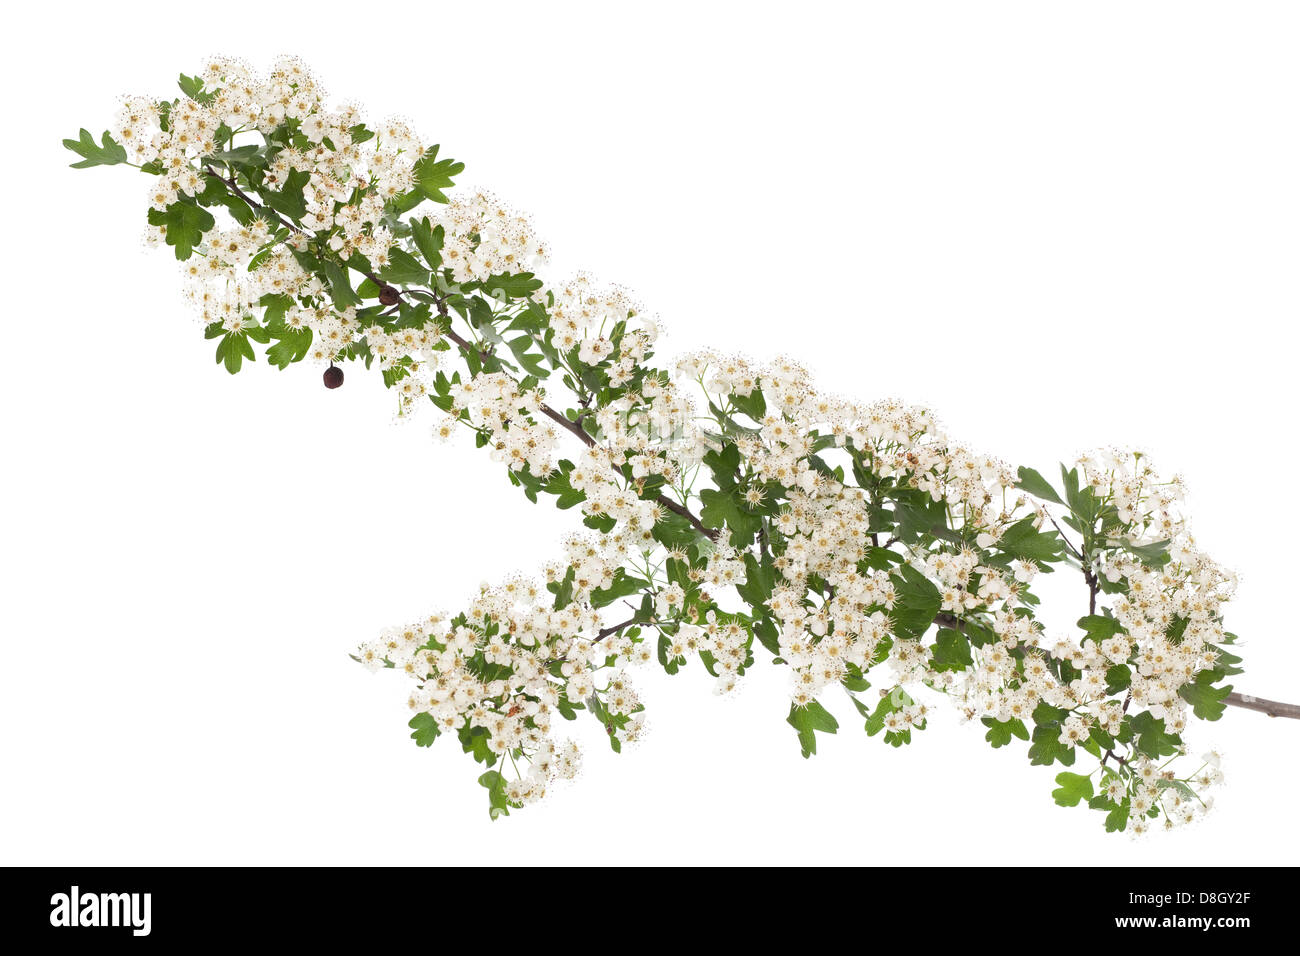 hawthorn branch with flowers on white background - Stock Image